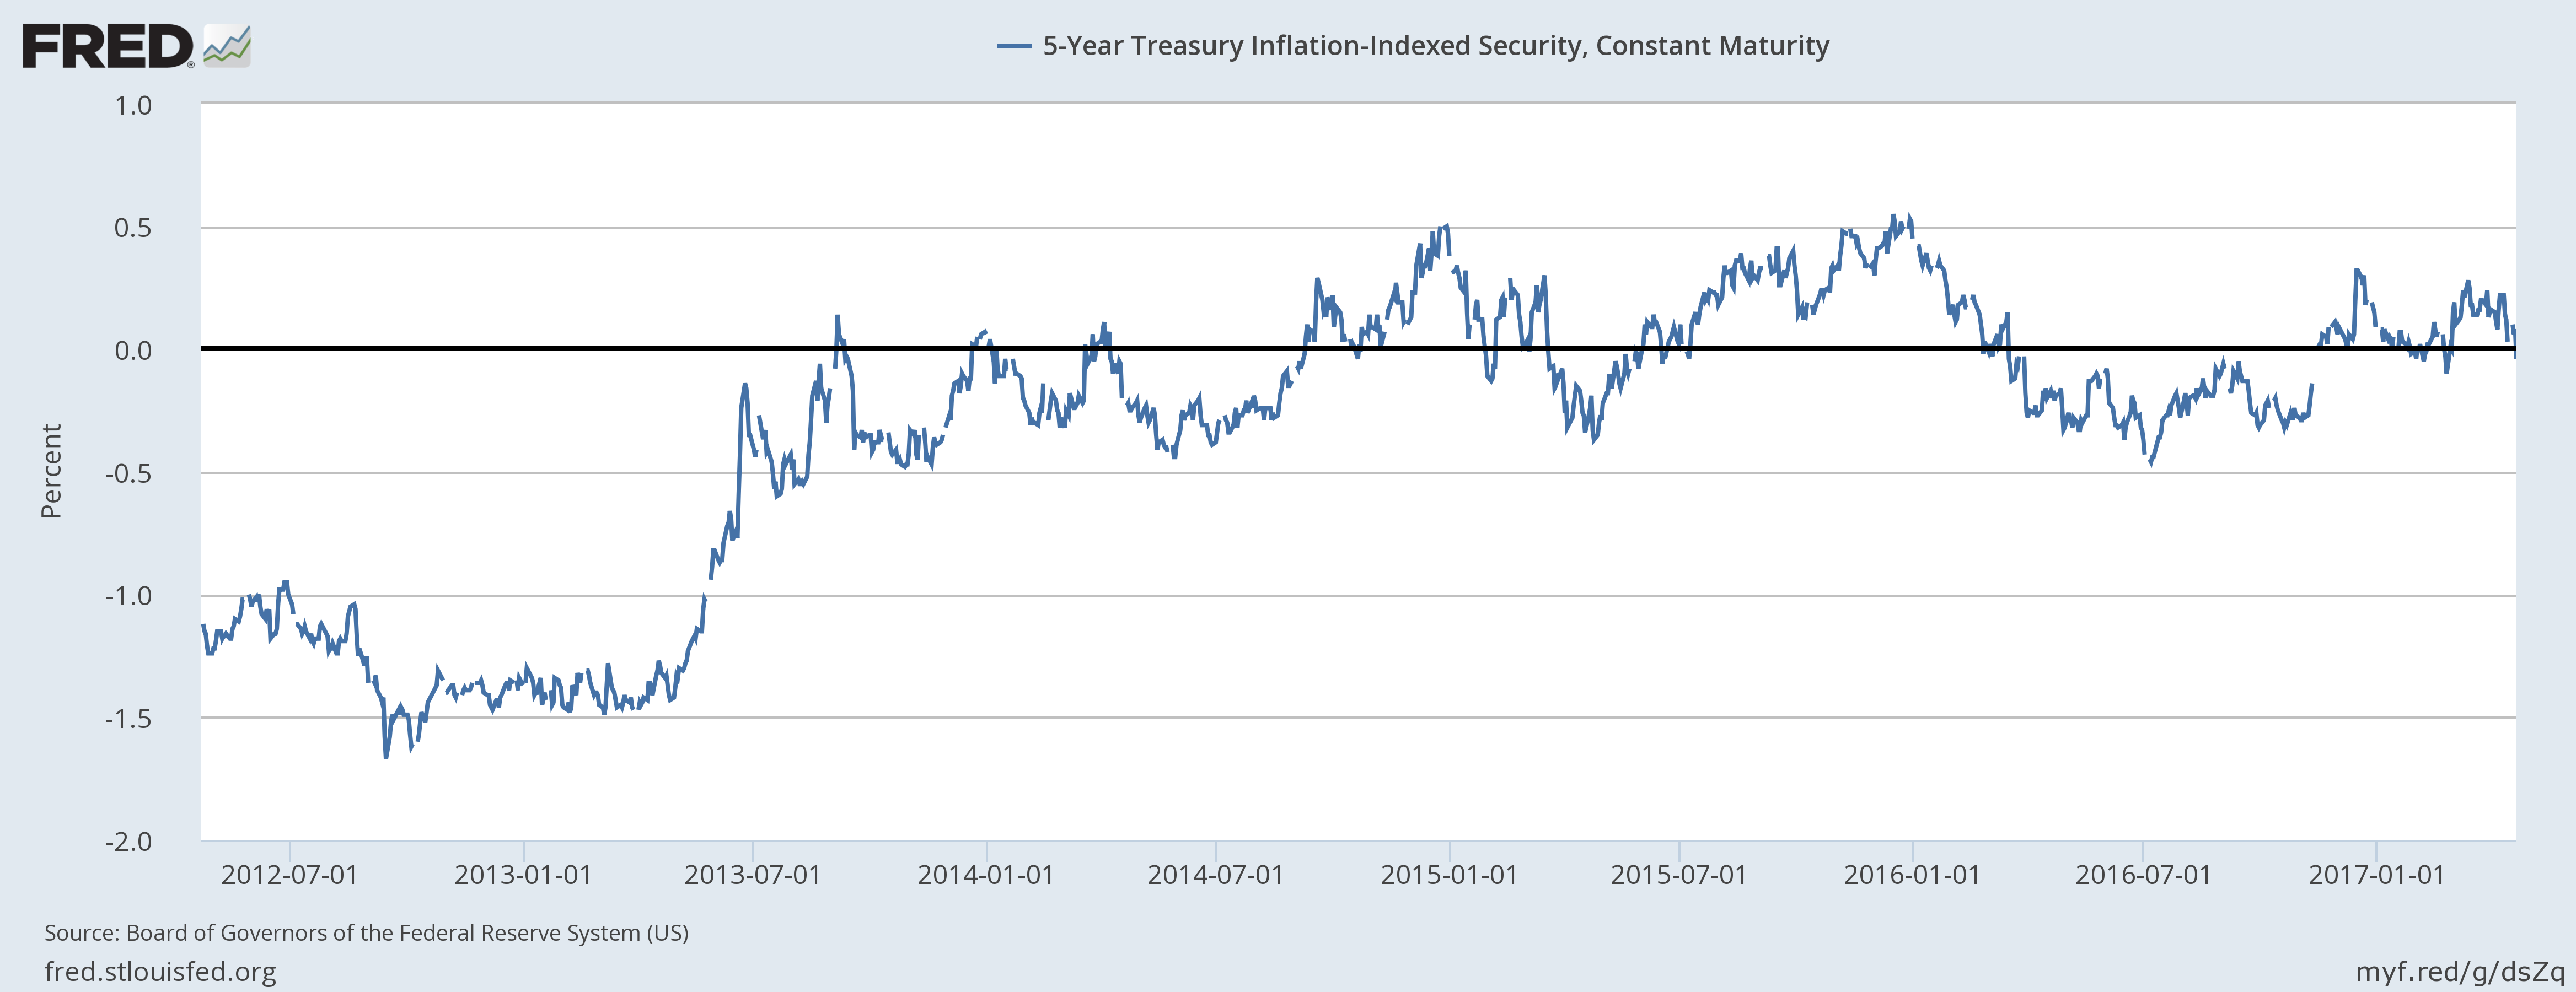 5 Year Treasury Inflation-Indexed Security, Jul 2012 - Jan 2017